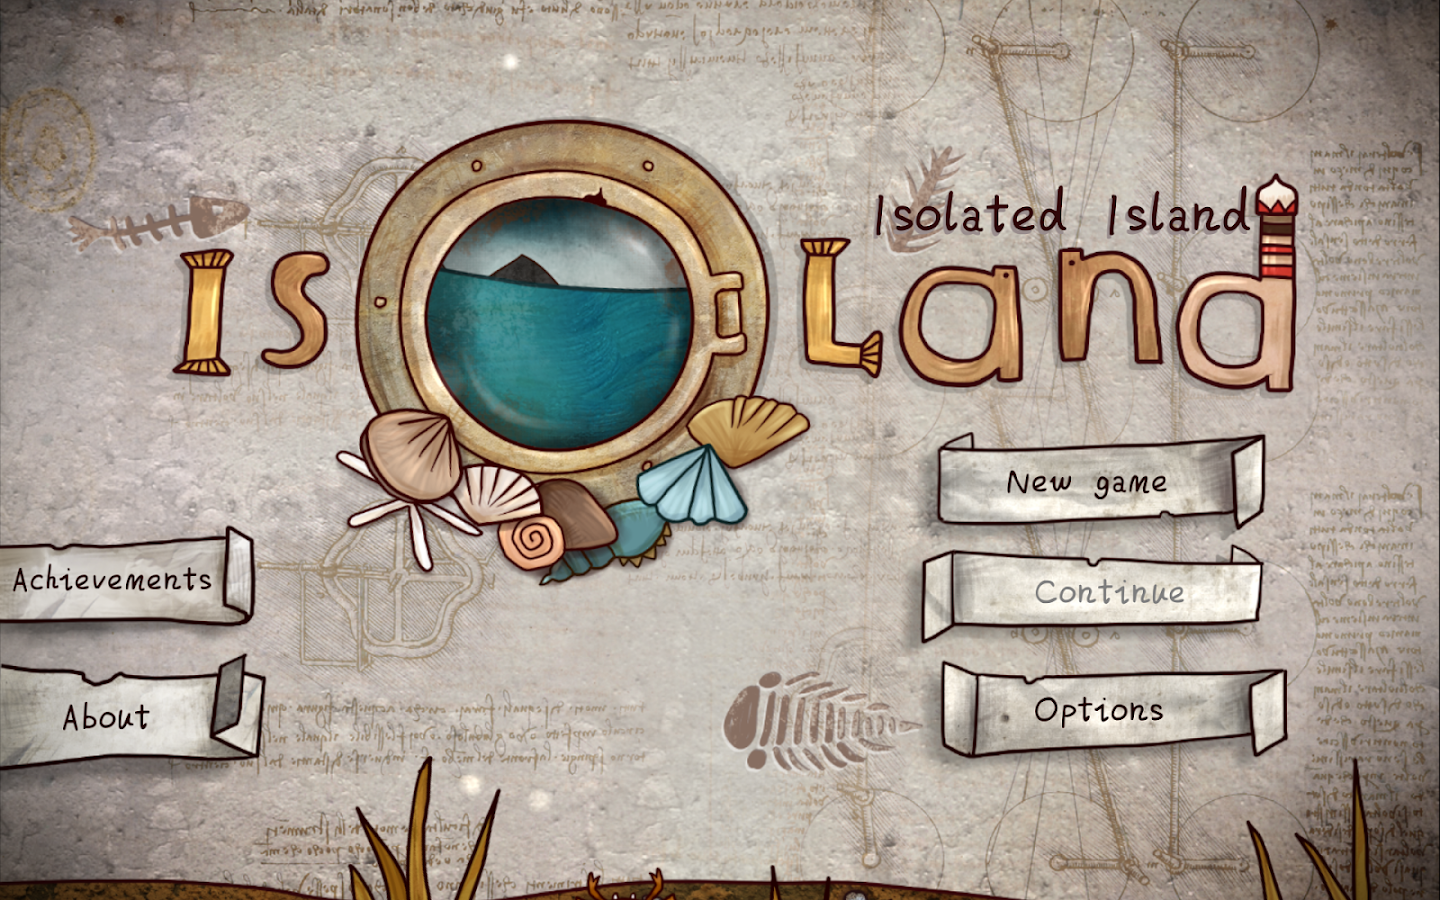 Isoland Screenshot 13